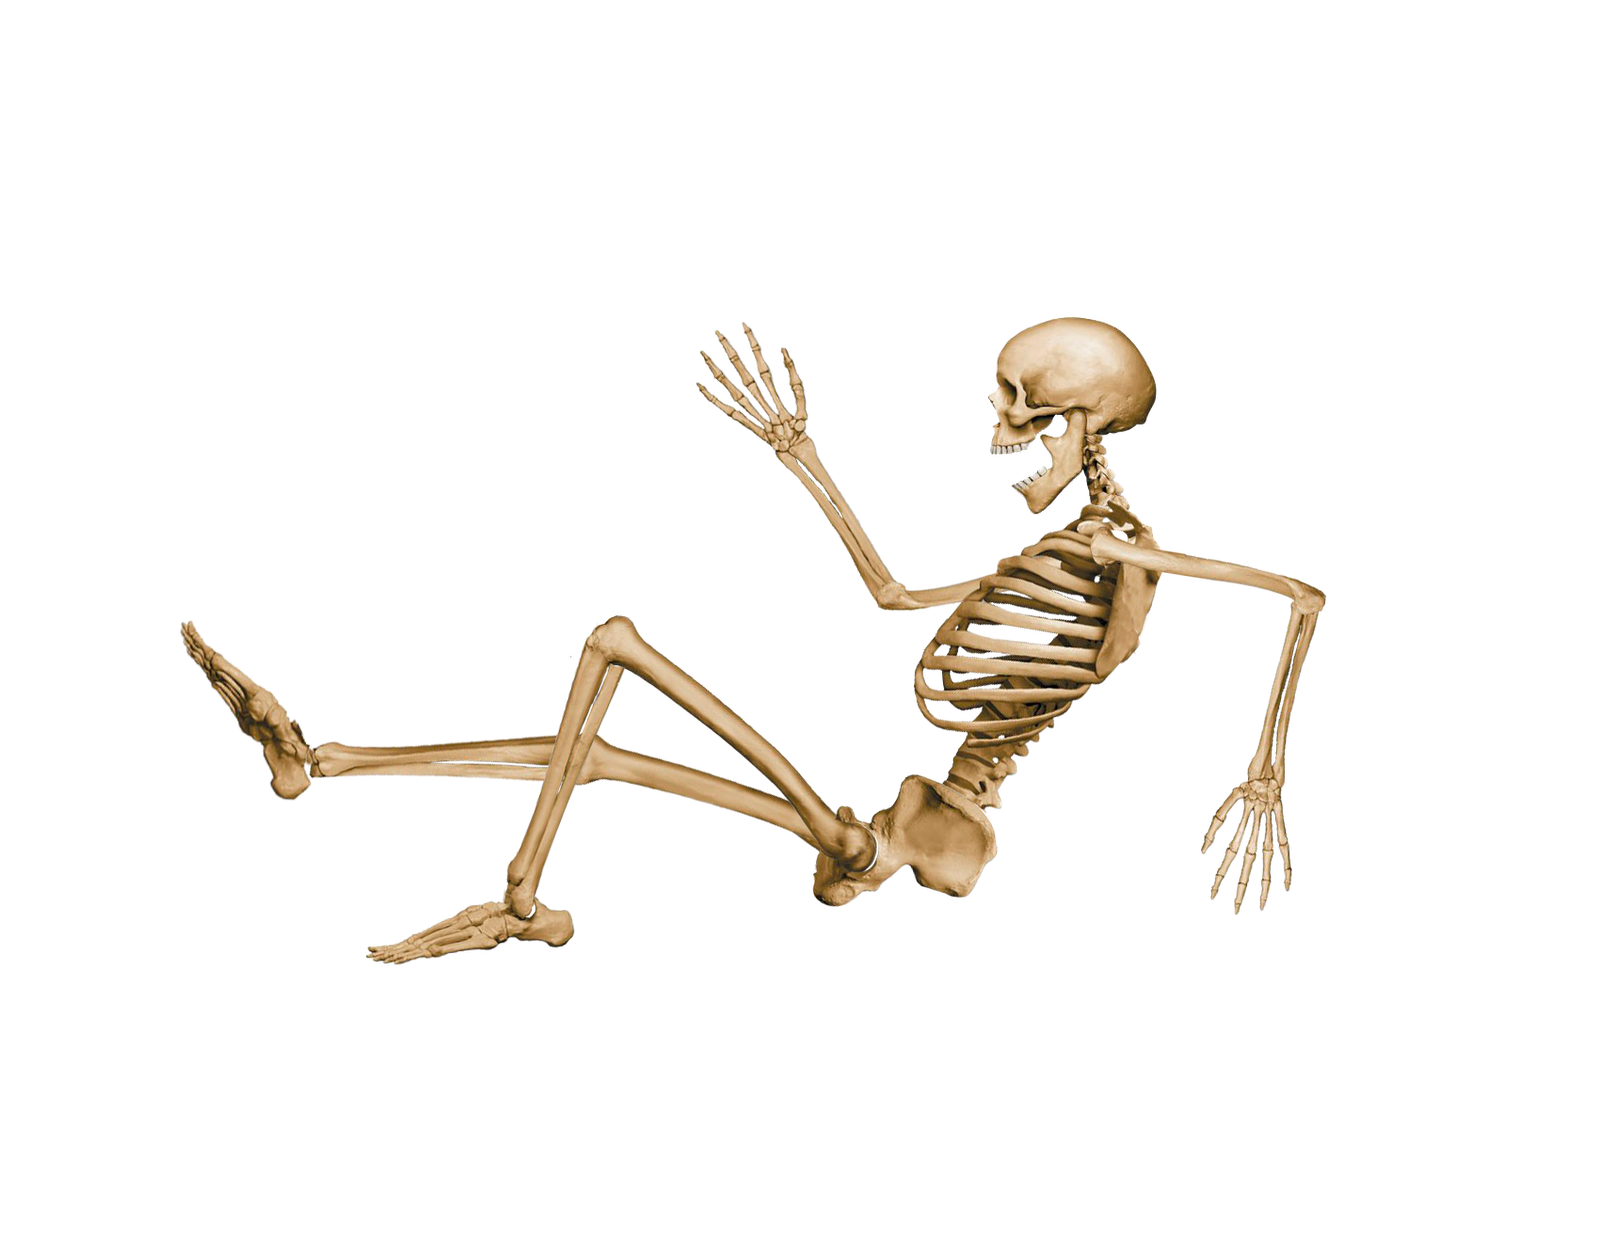 skeleton sitting down - google search | human anatomy (photo, Skeleton